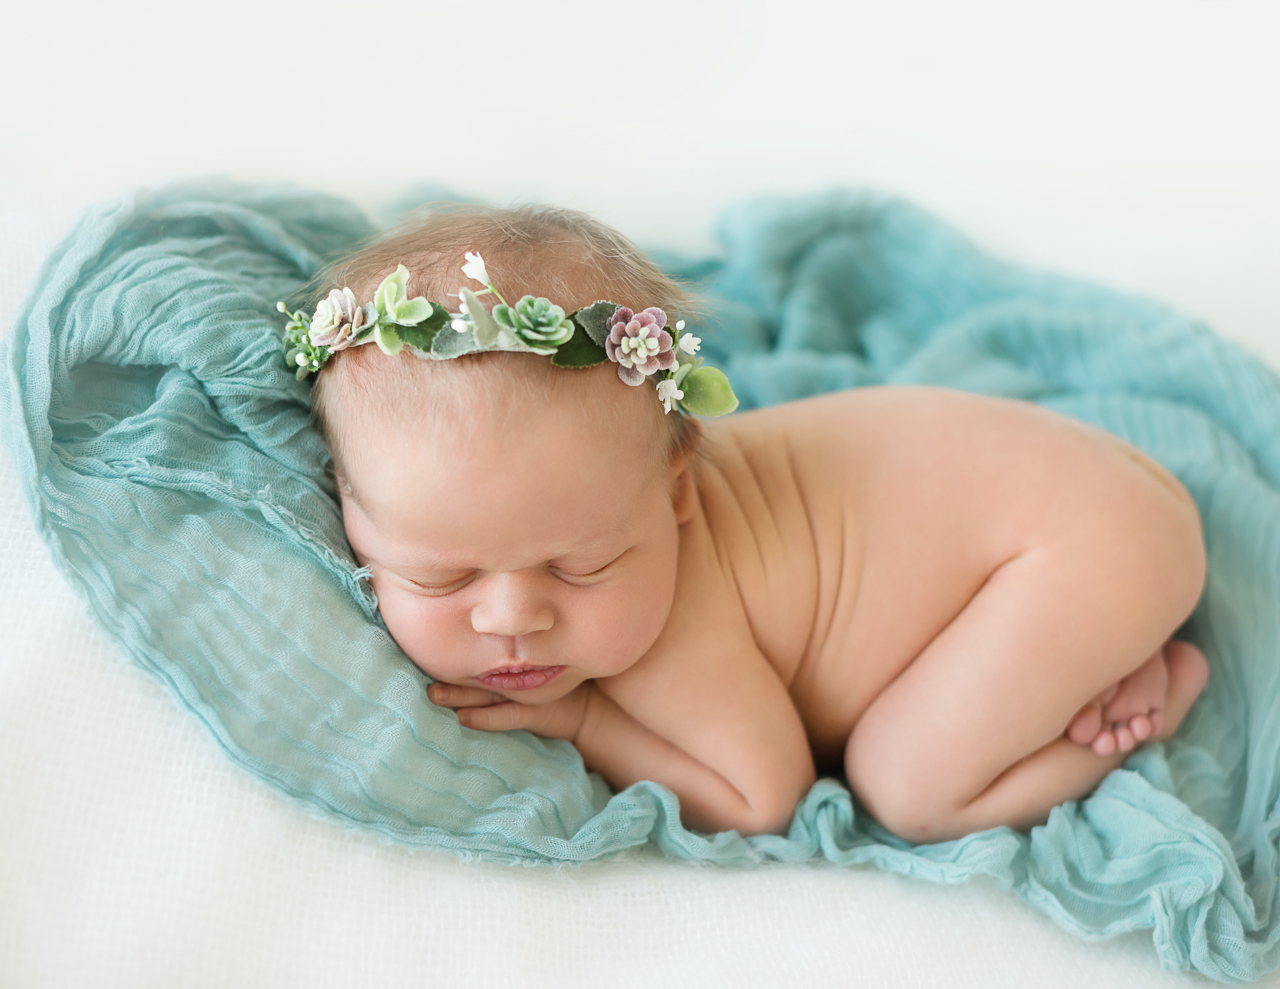 Mila-Newborn-Brisbane-Newborn-Photographer-Sonja-Griffioen-ft-07